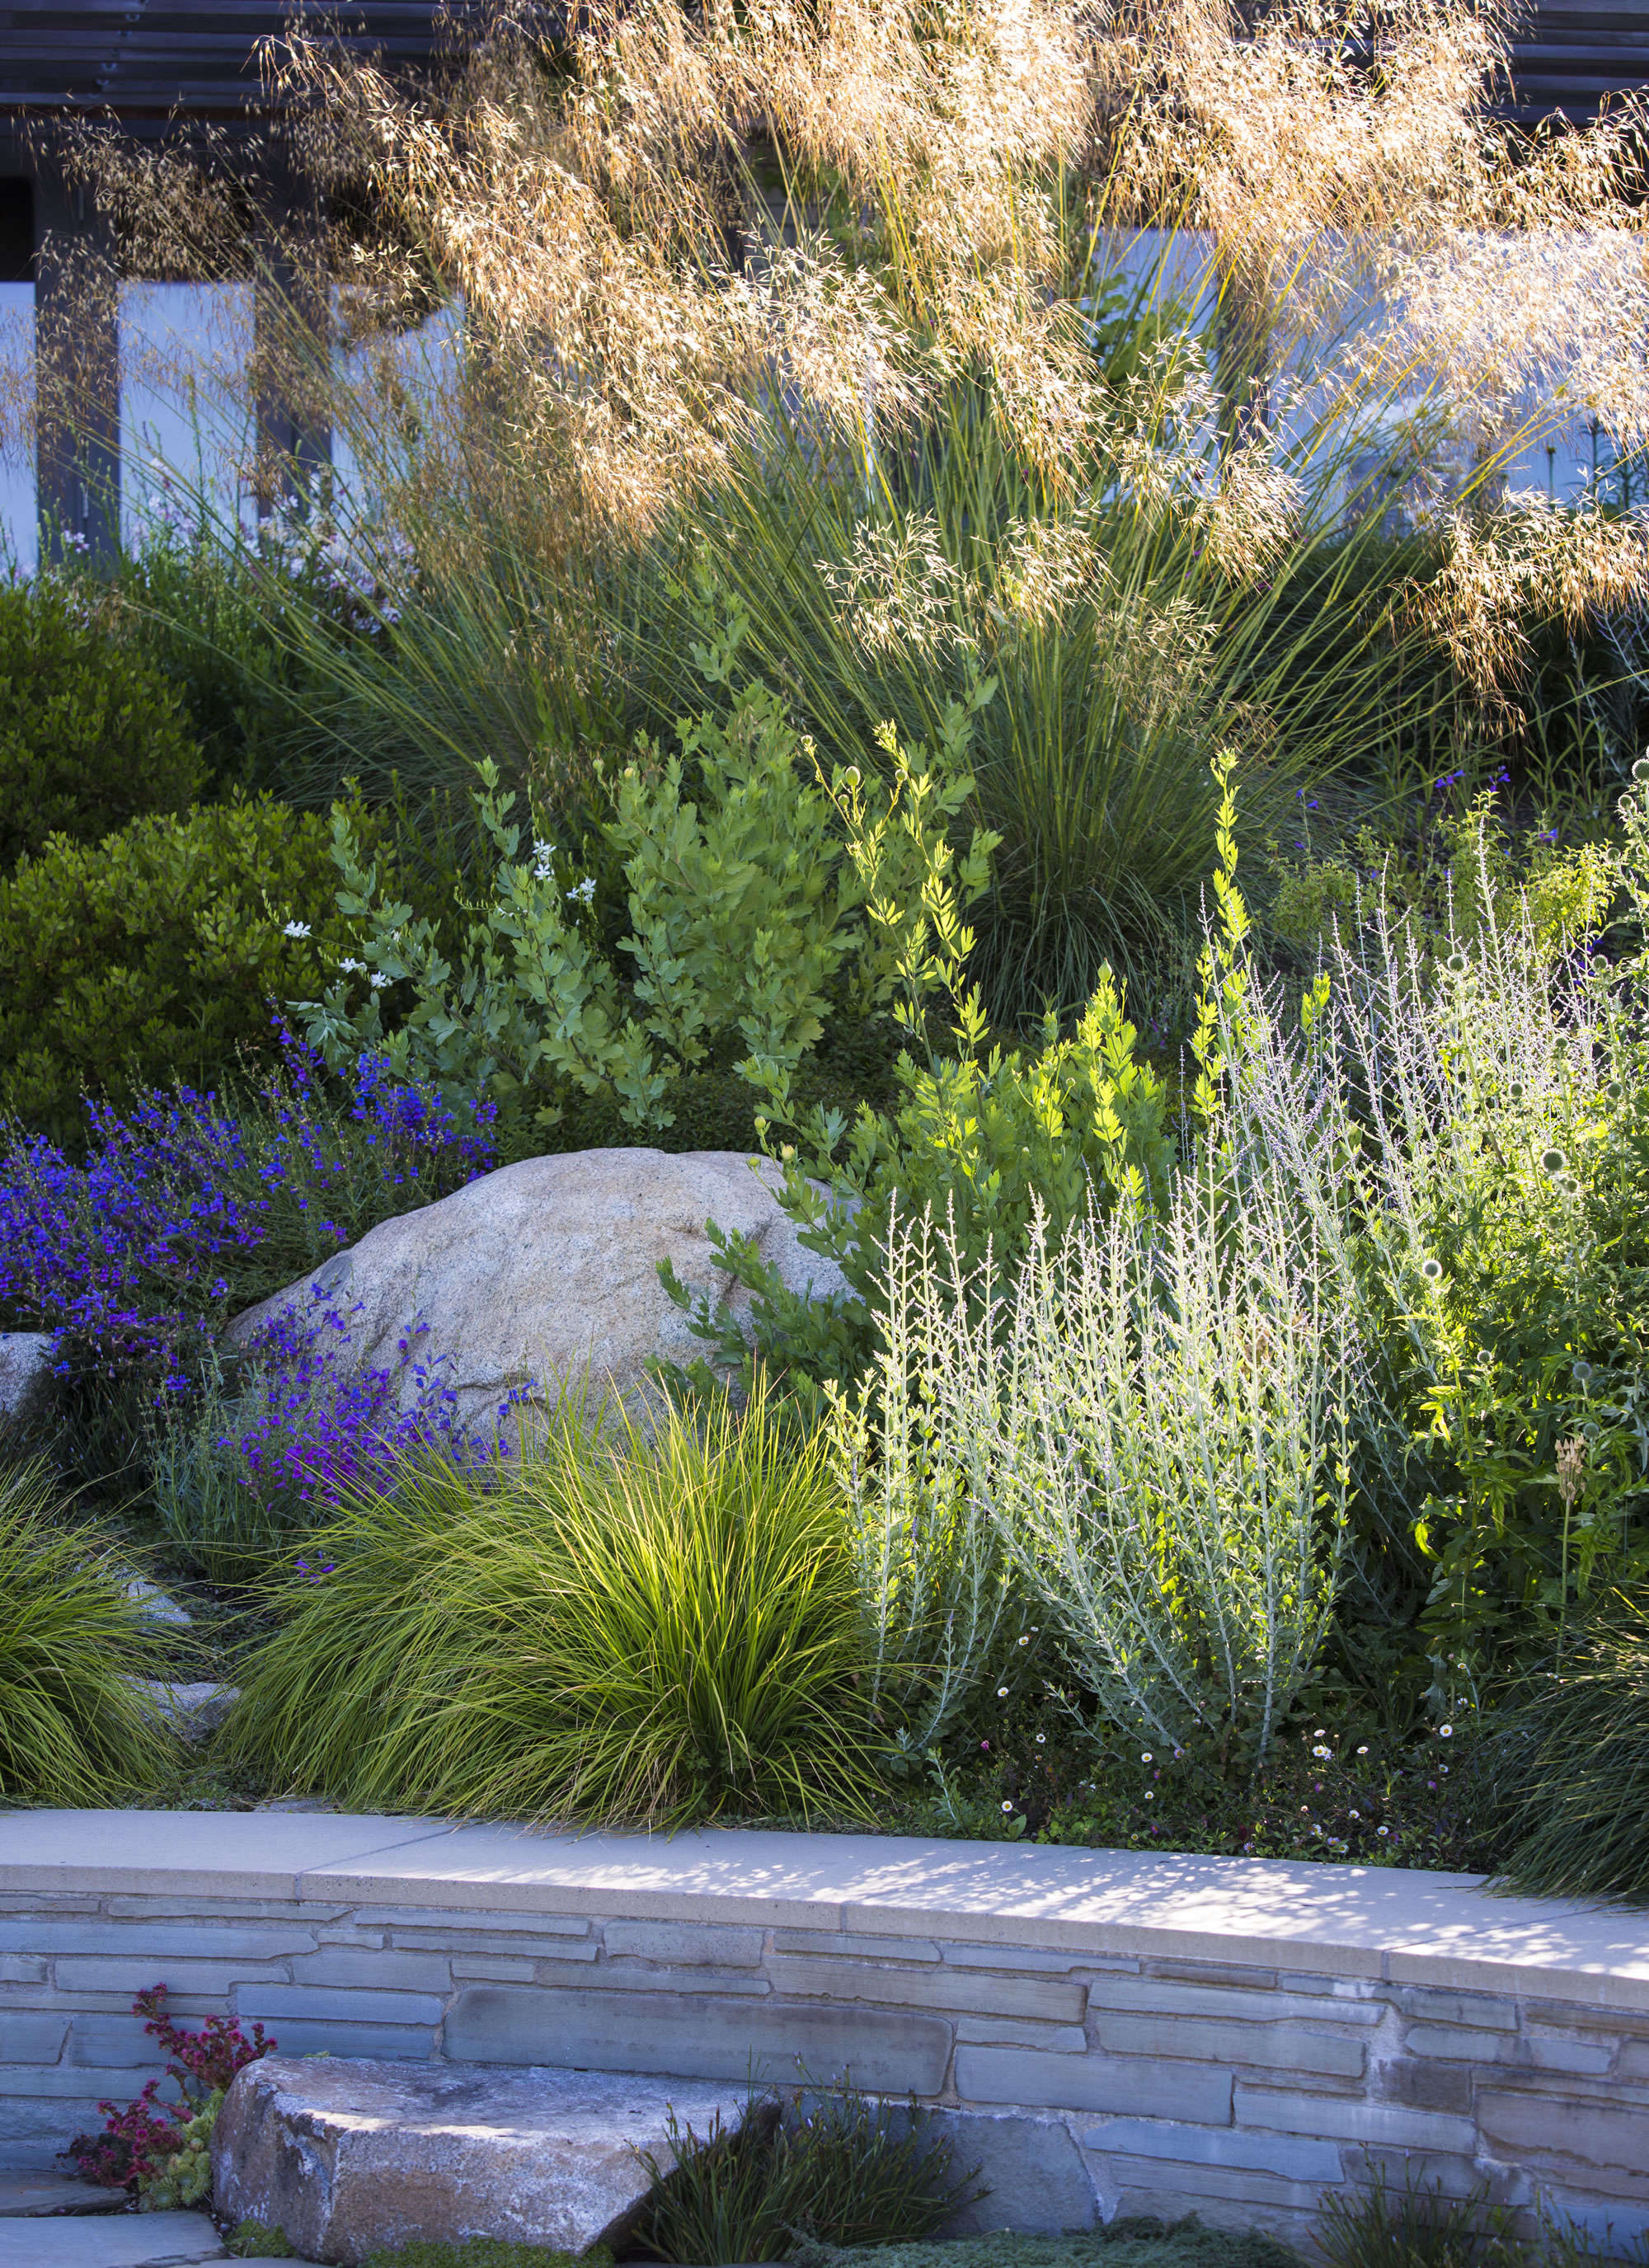 Above: Behind A Retaining Wall Is A Palette Of Purple, Yellow, And White  Flowering Perennials, Their Colors Thrown Into Relief By Clumps Of  Perennial ...